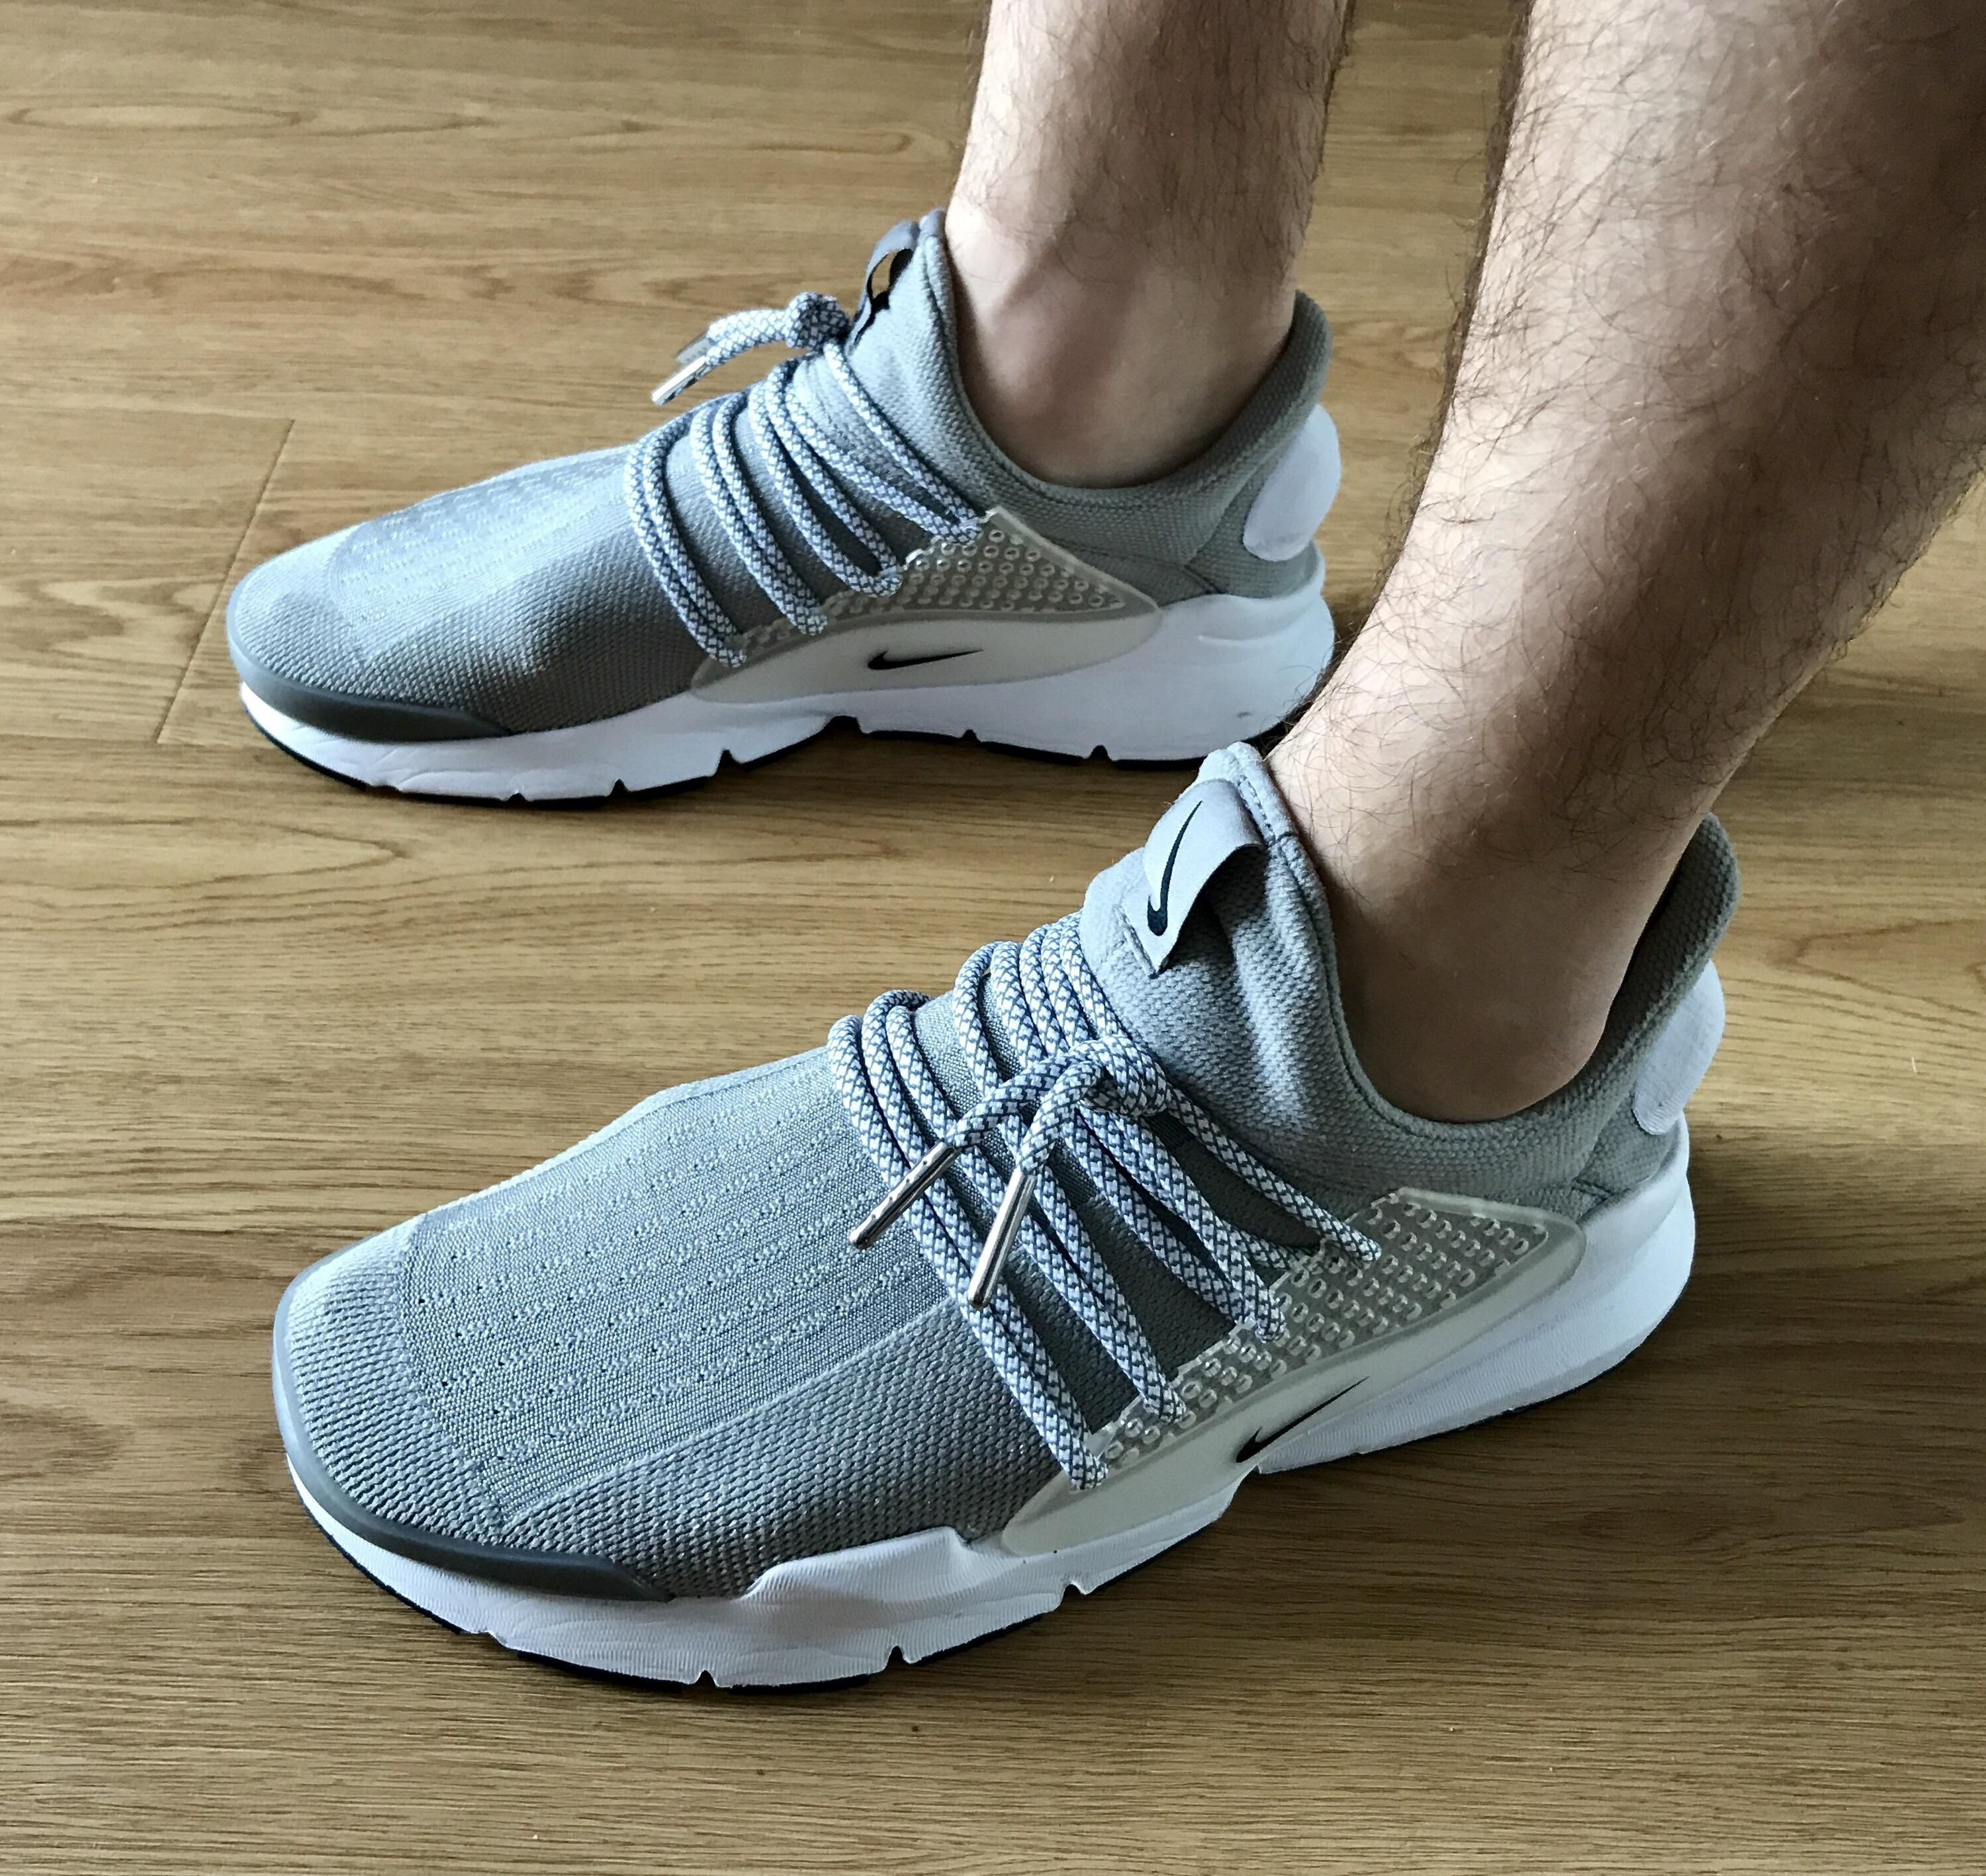 Finally Decided To Give The Sock Dart Lace Mod A Try Fairly Happy With The Results Chaussure Chaussures Homme